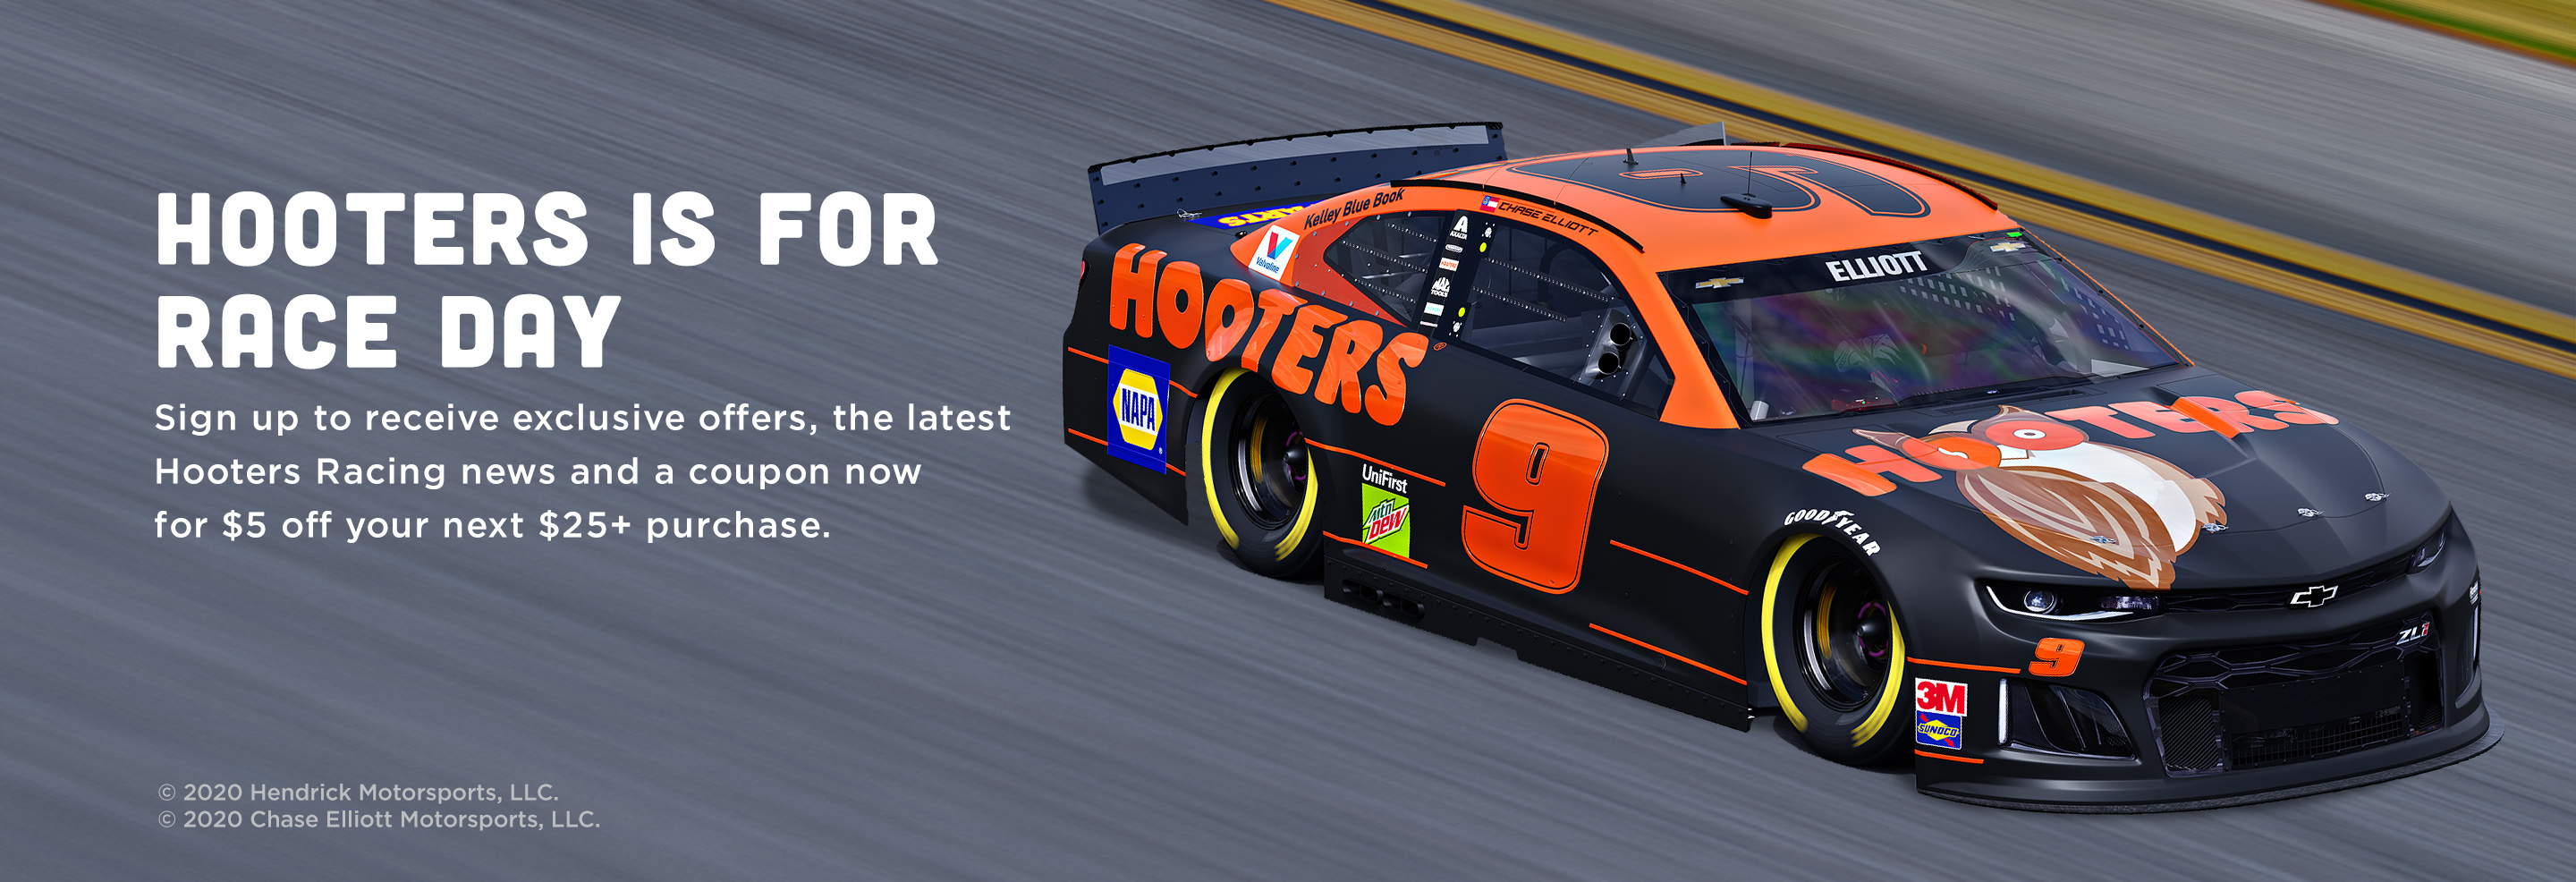 Hooters is For Race Day